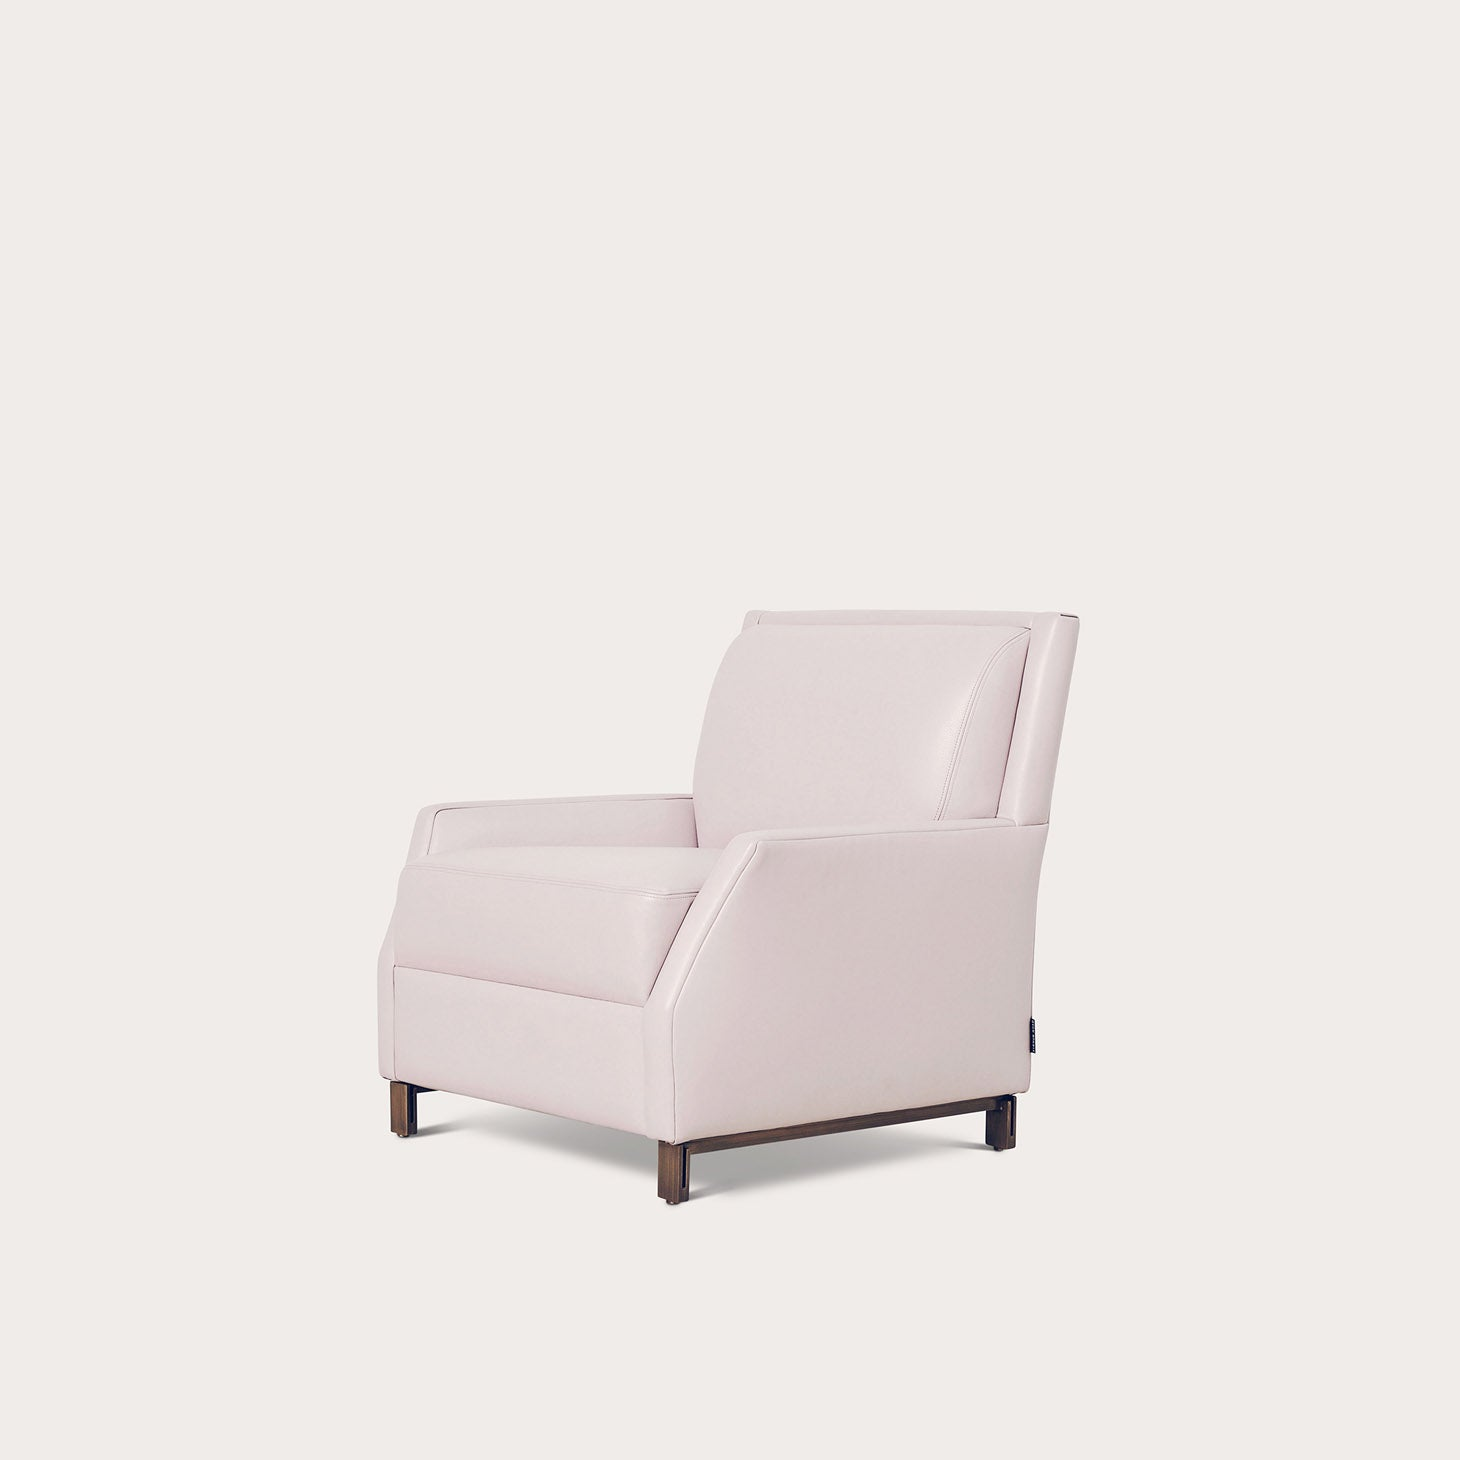 Groovy Perry Street Lounge Chairs By Yabu Pushelberg Avenue Road Pabps2019 Chair Design Images Pabps2019Com